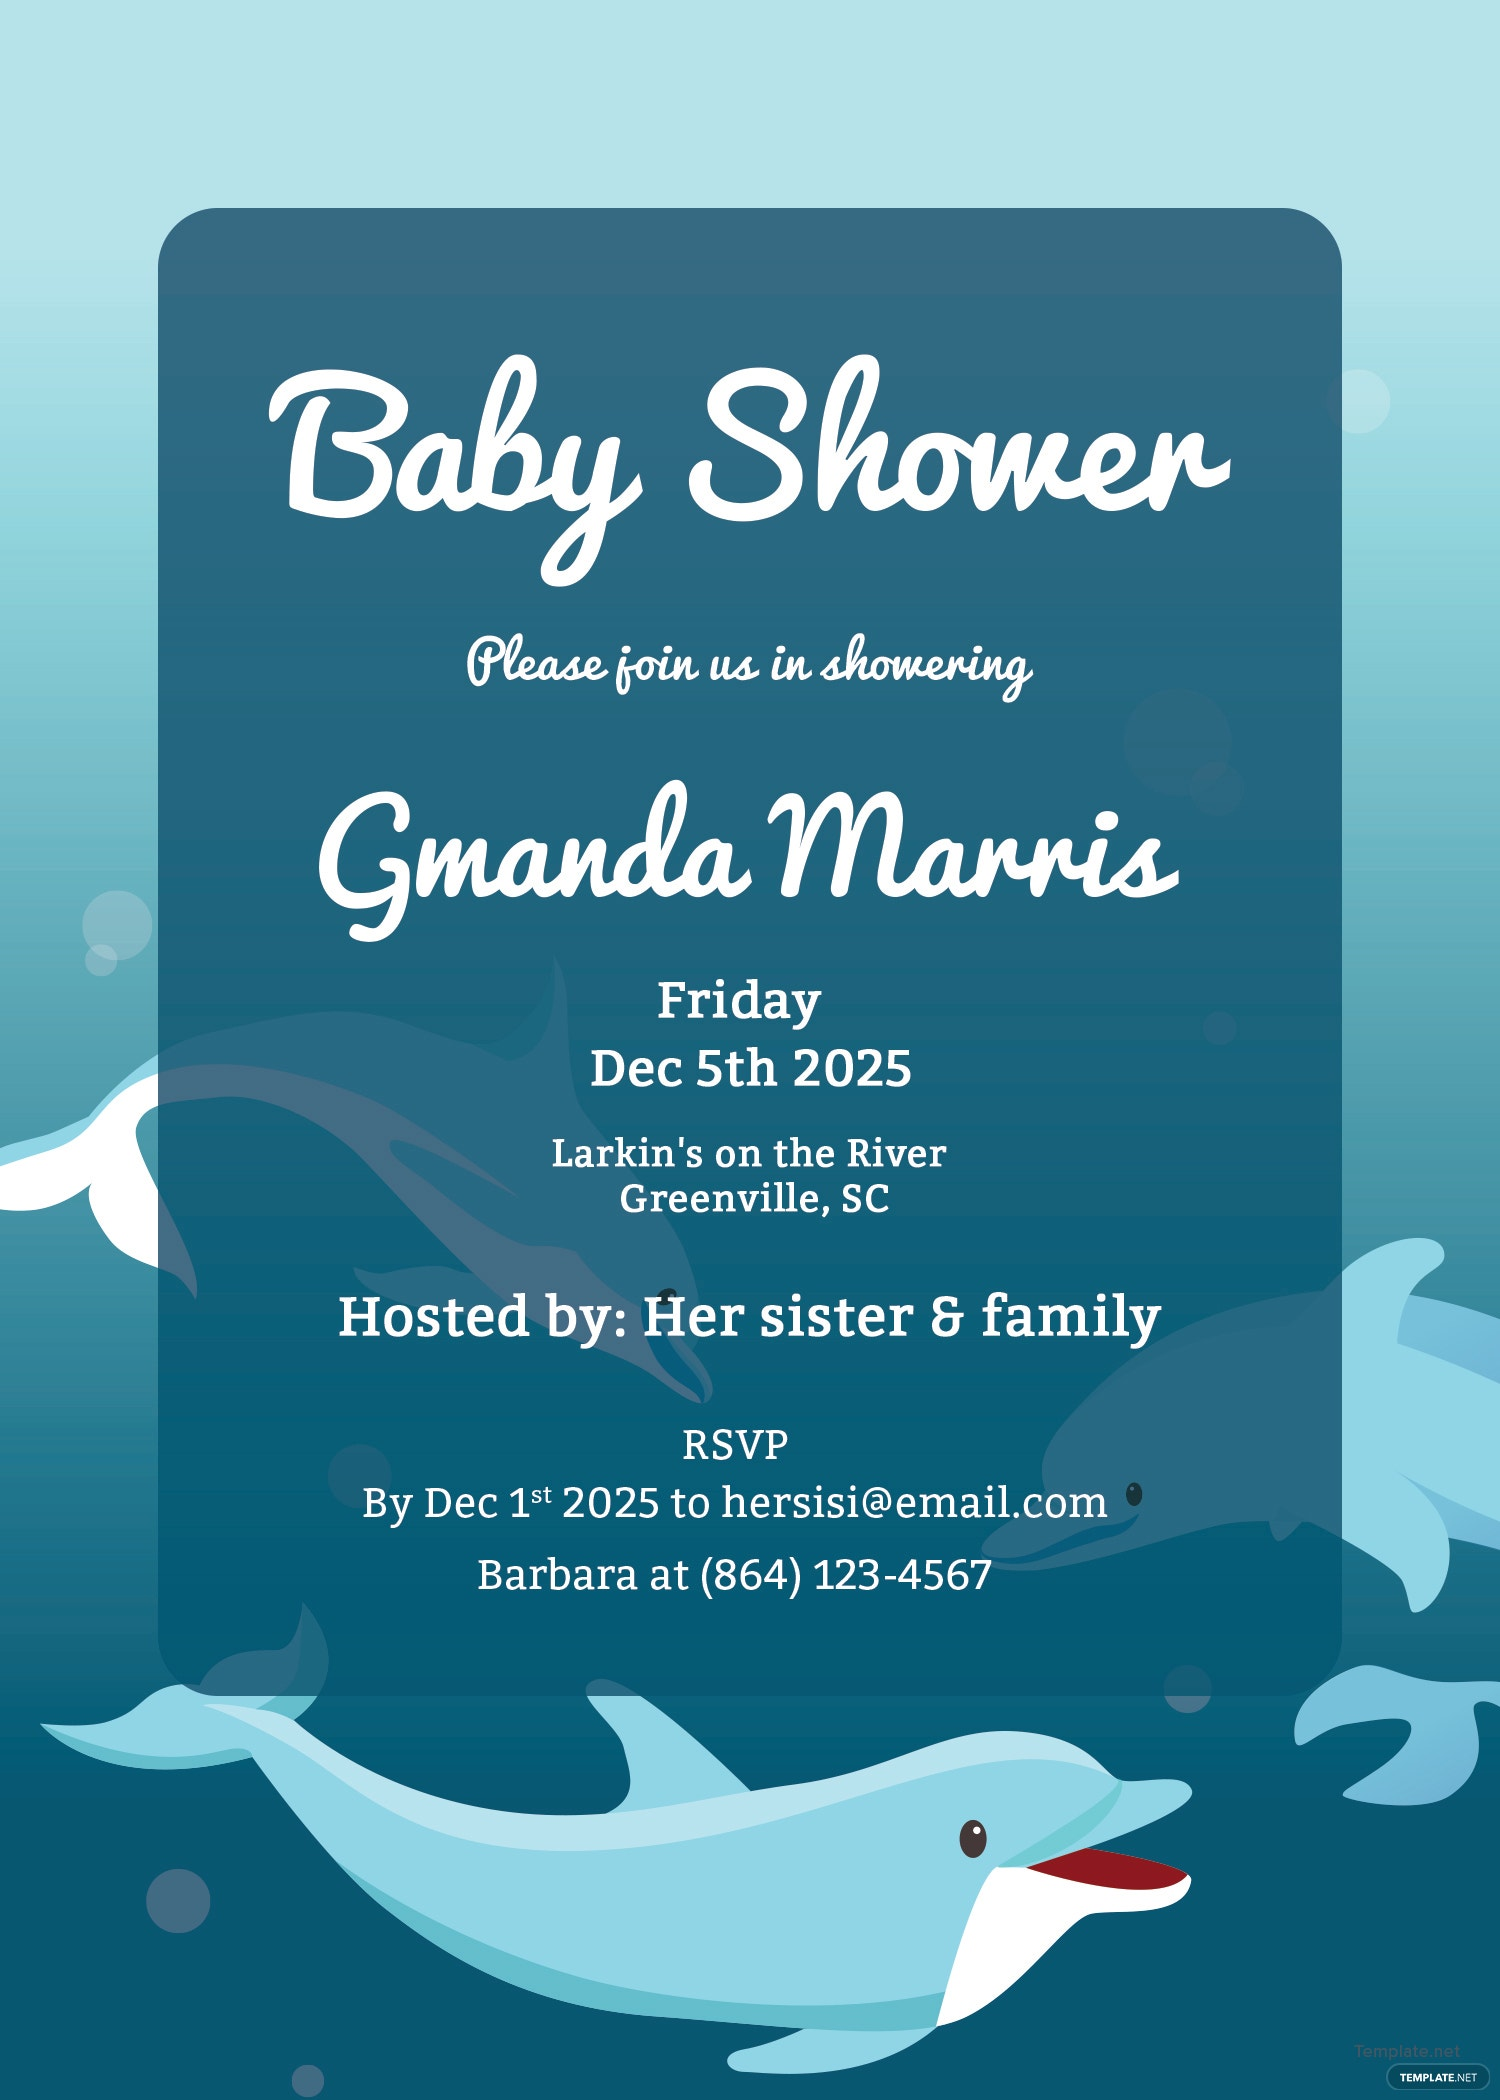 Printable Baby Shower Invitation Template in Adobe Photoshop ...